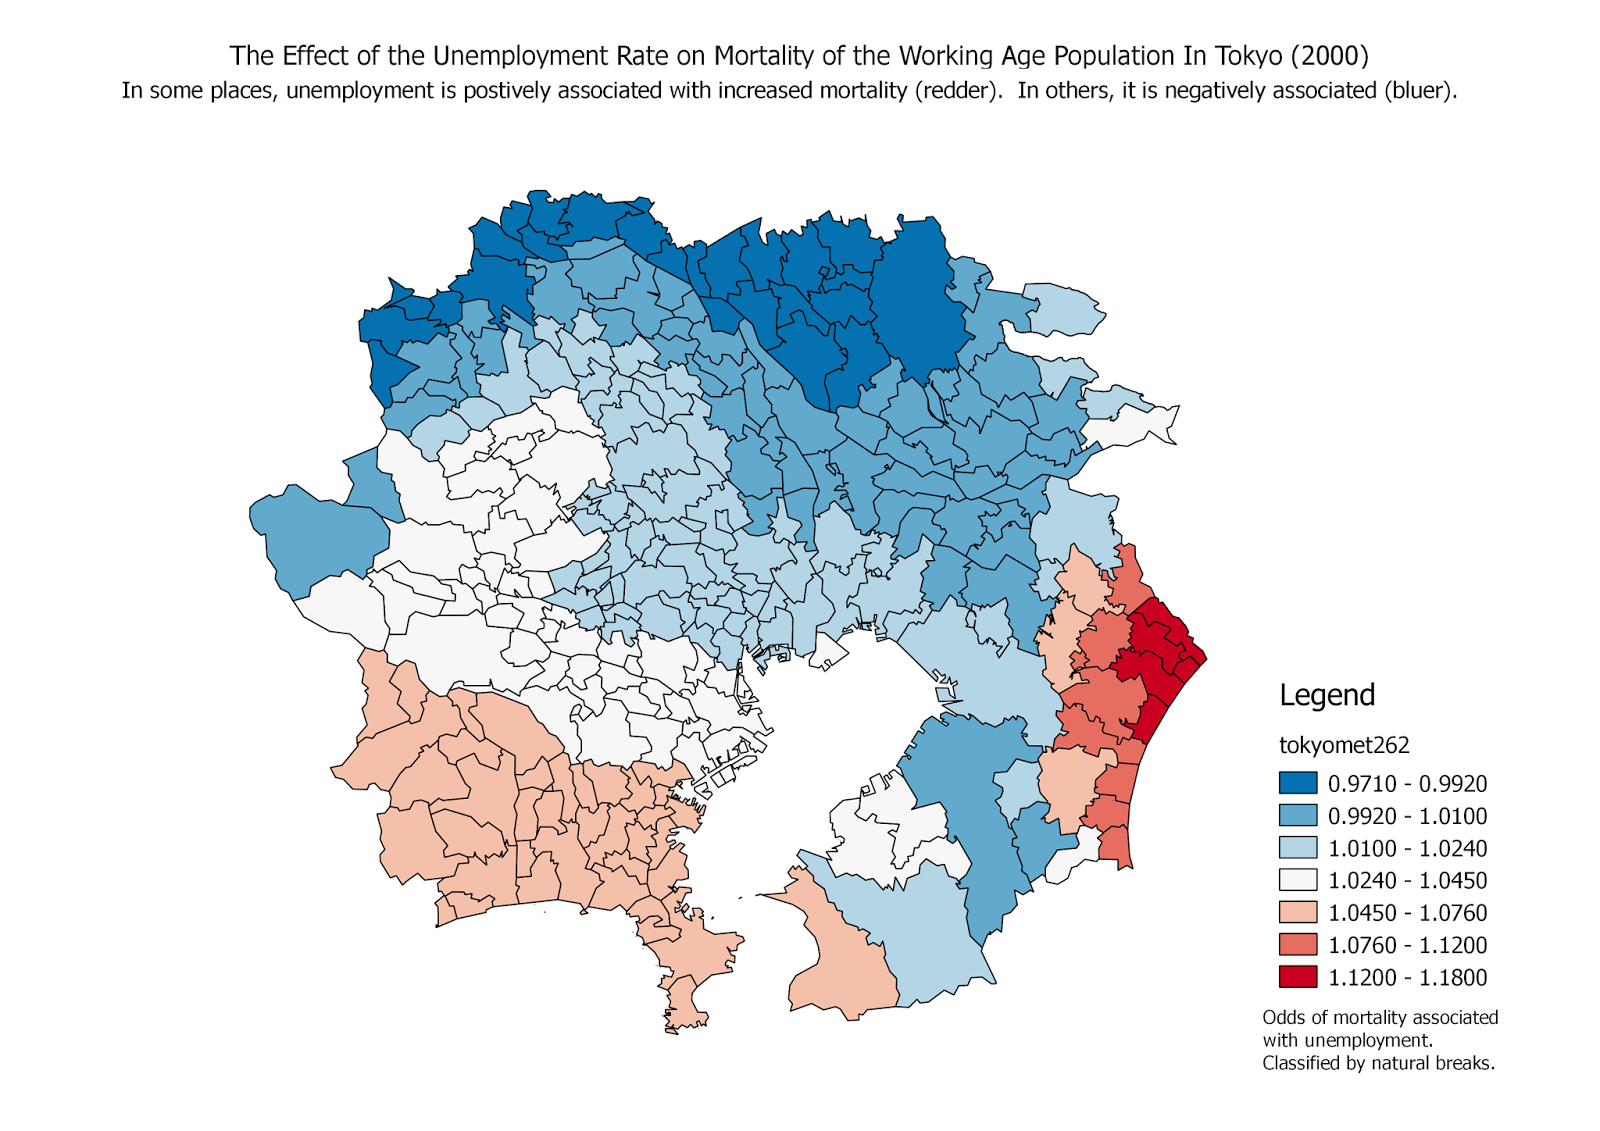 open source gis blog gwr4 software for geographically weighted odds of the effects of the unemployment rate on mortality among the working age population each of the 262 municipalities in tokyo has an estimate of